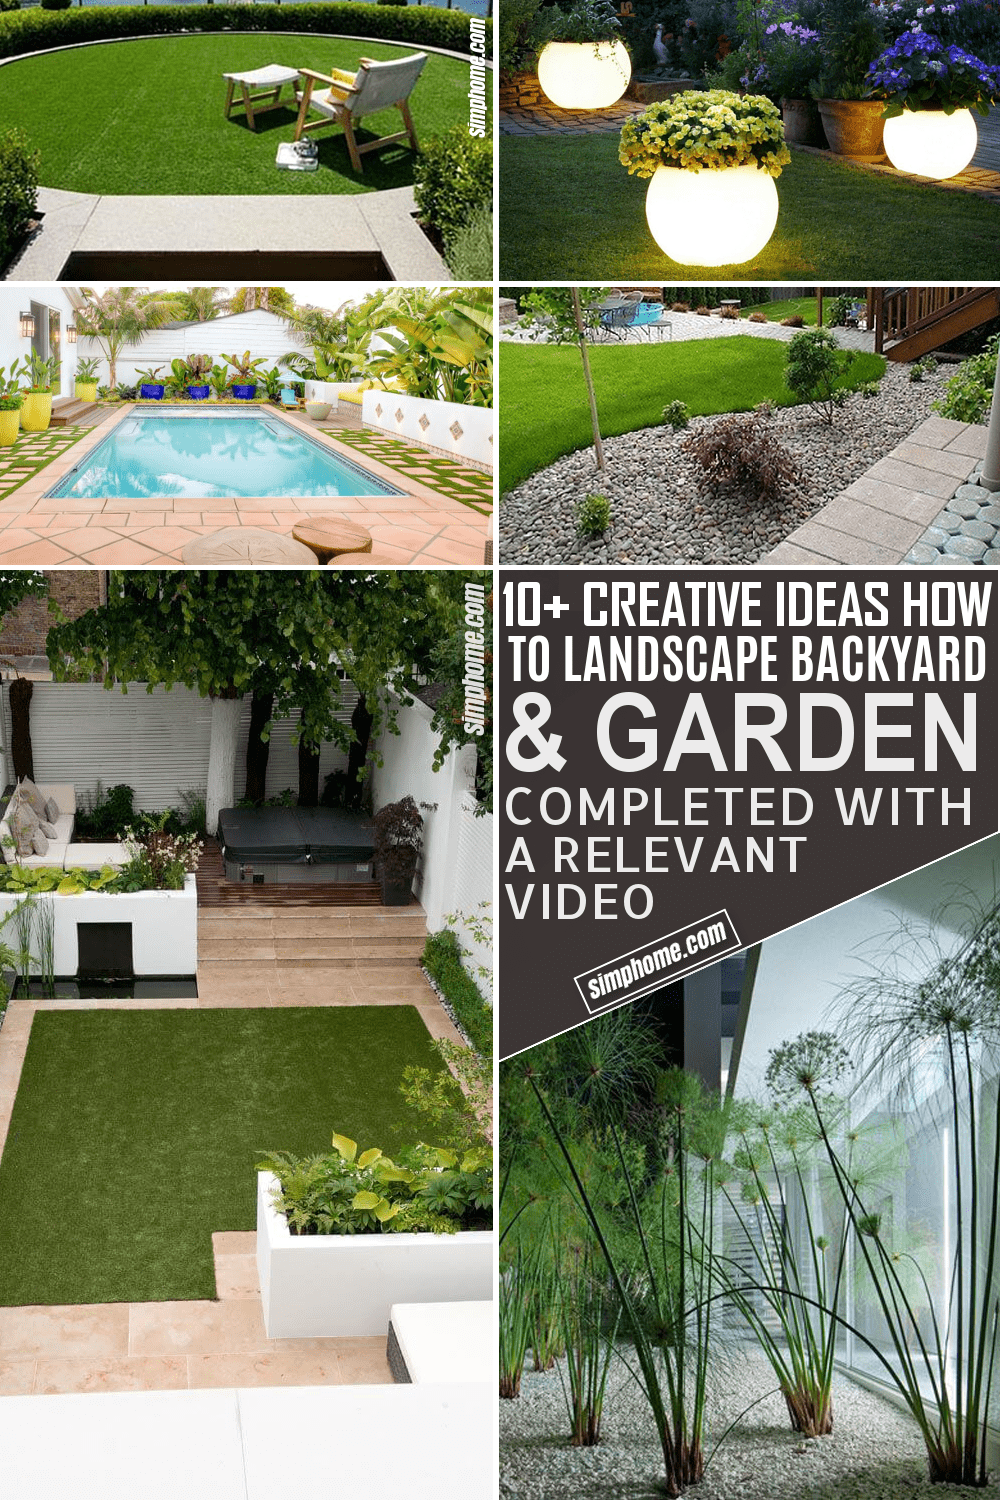 10 Ideas on How to Landscape Backyards and Gardens by Simphome.com